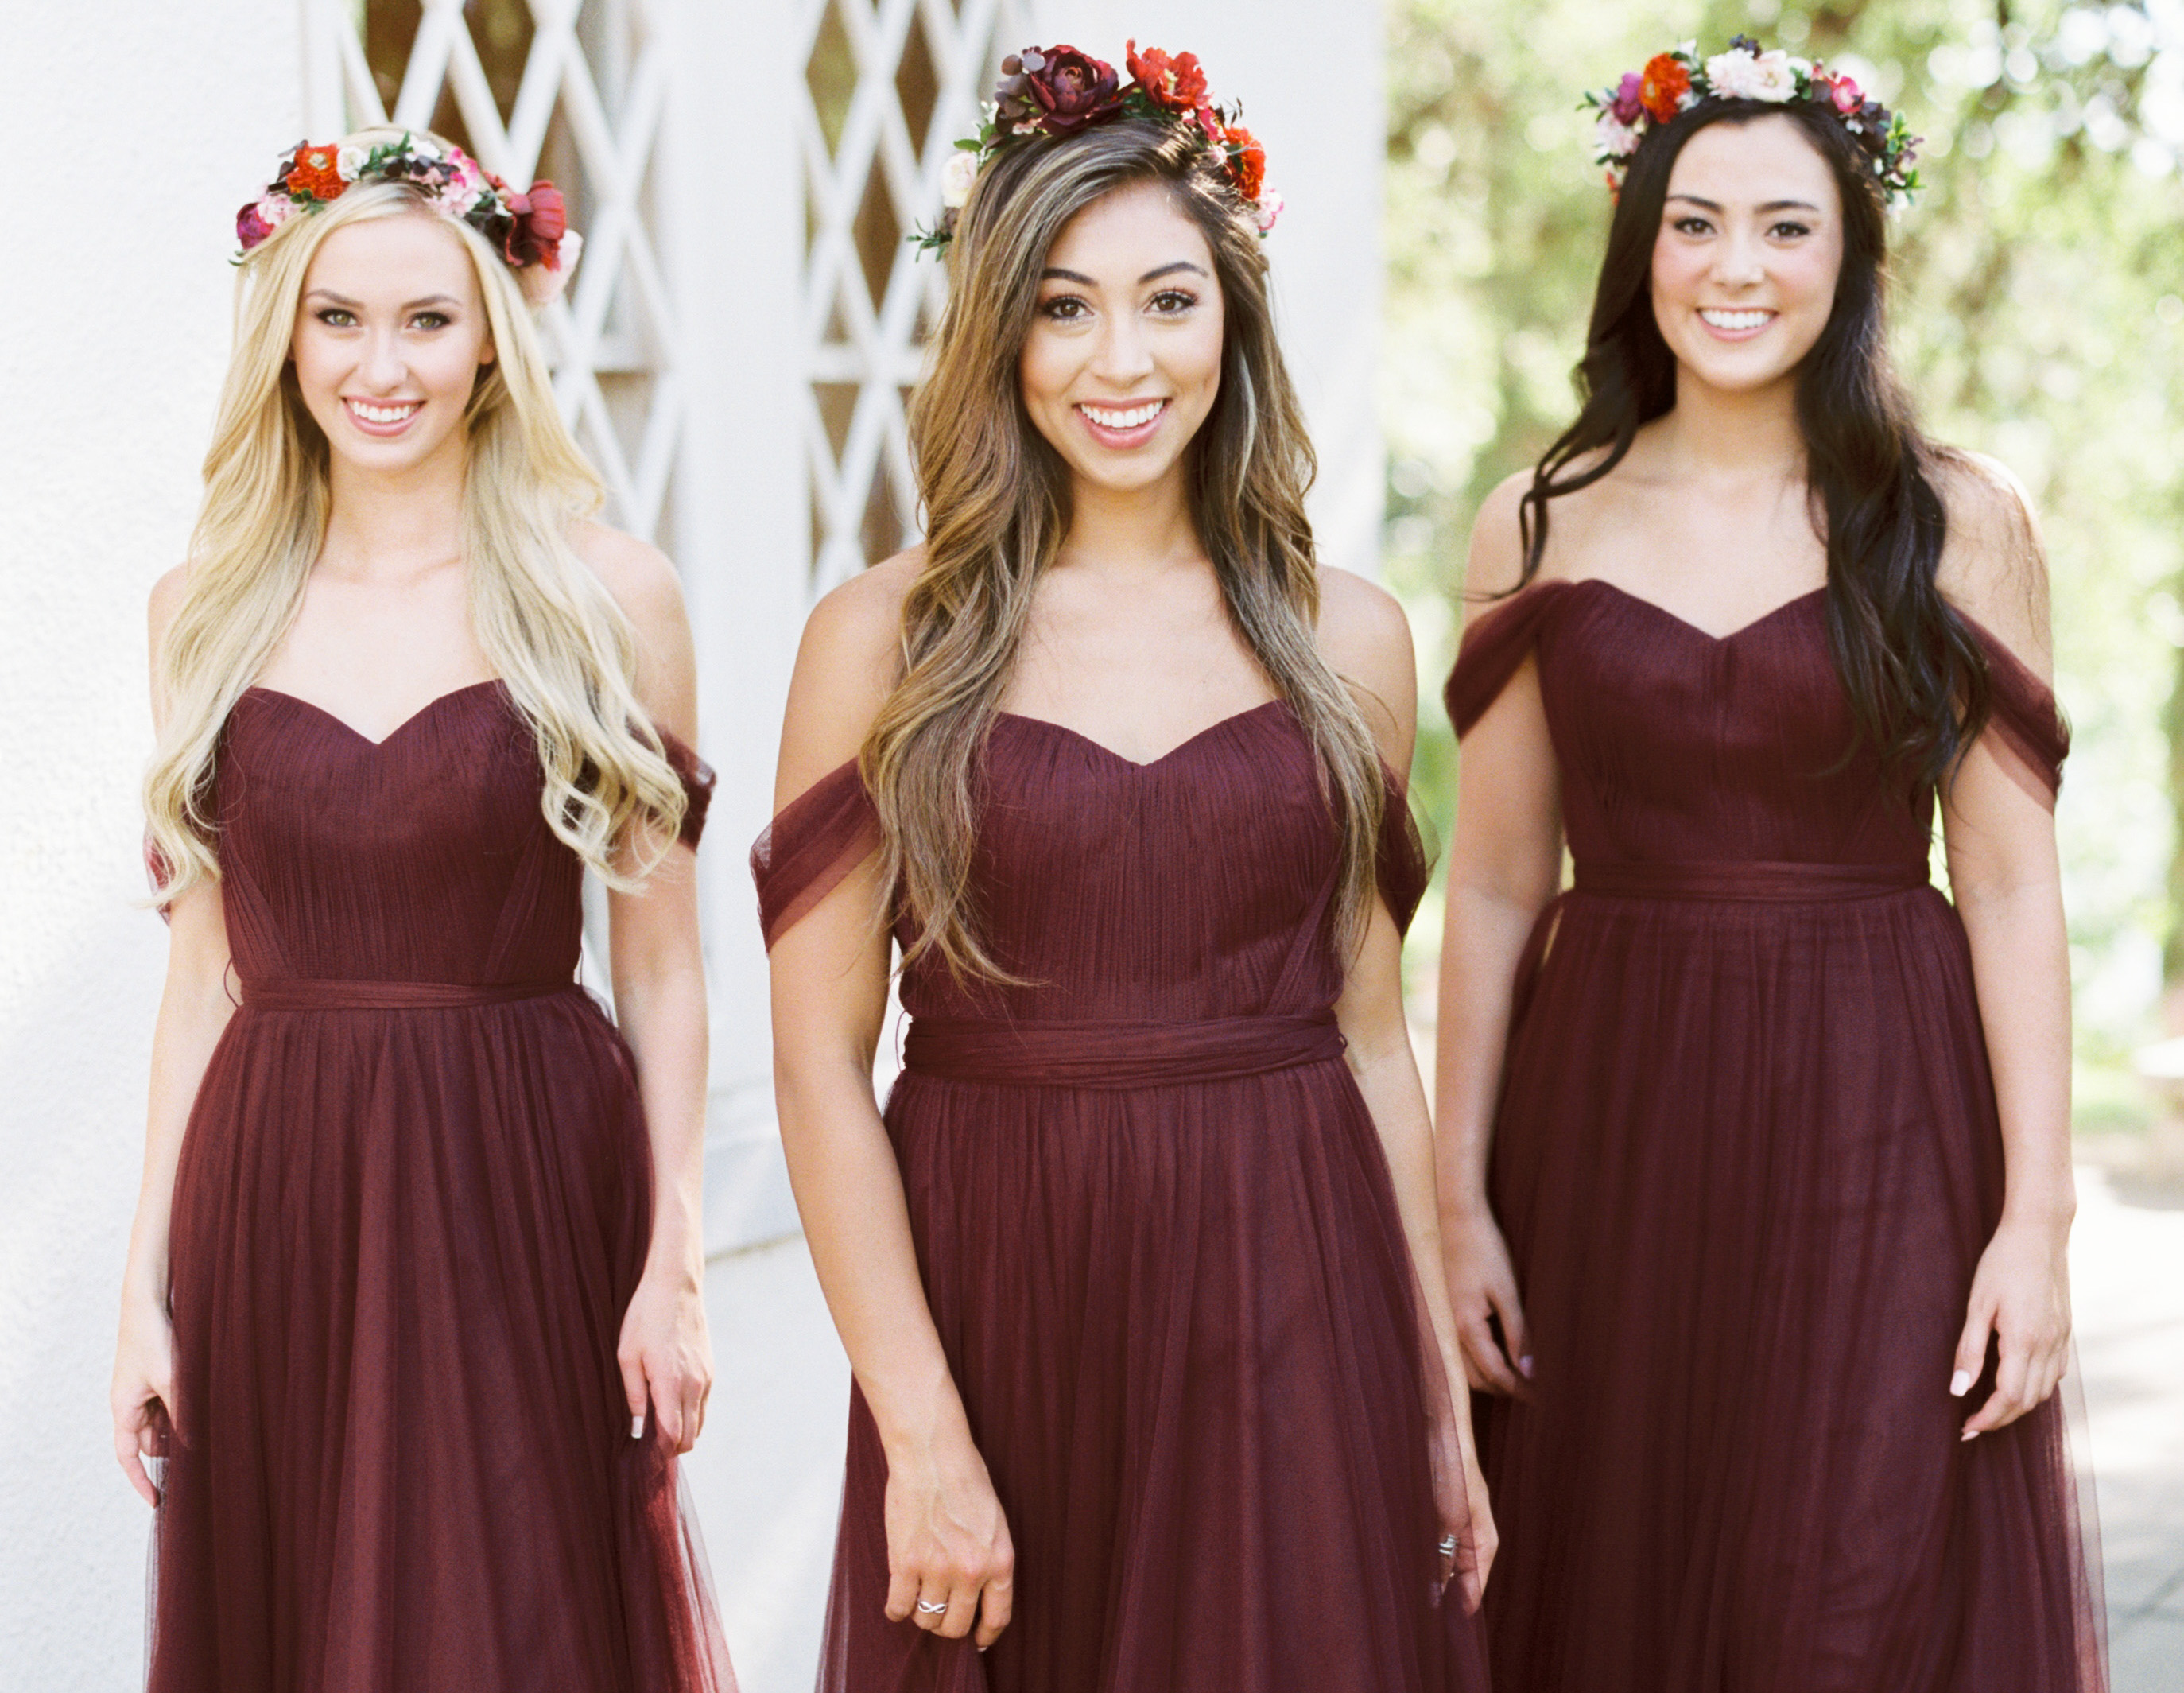 tulle-bridesmaid-dresses-burgandy.jpg